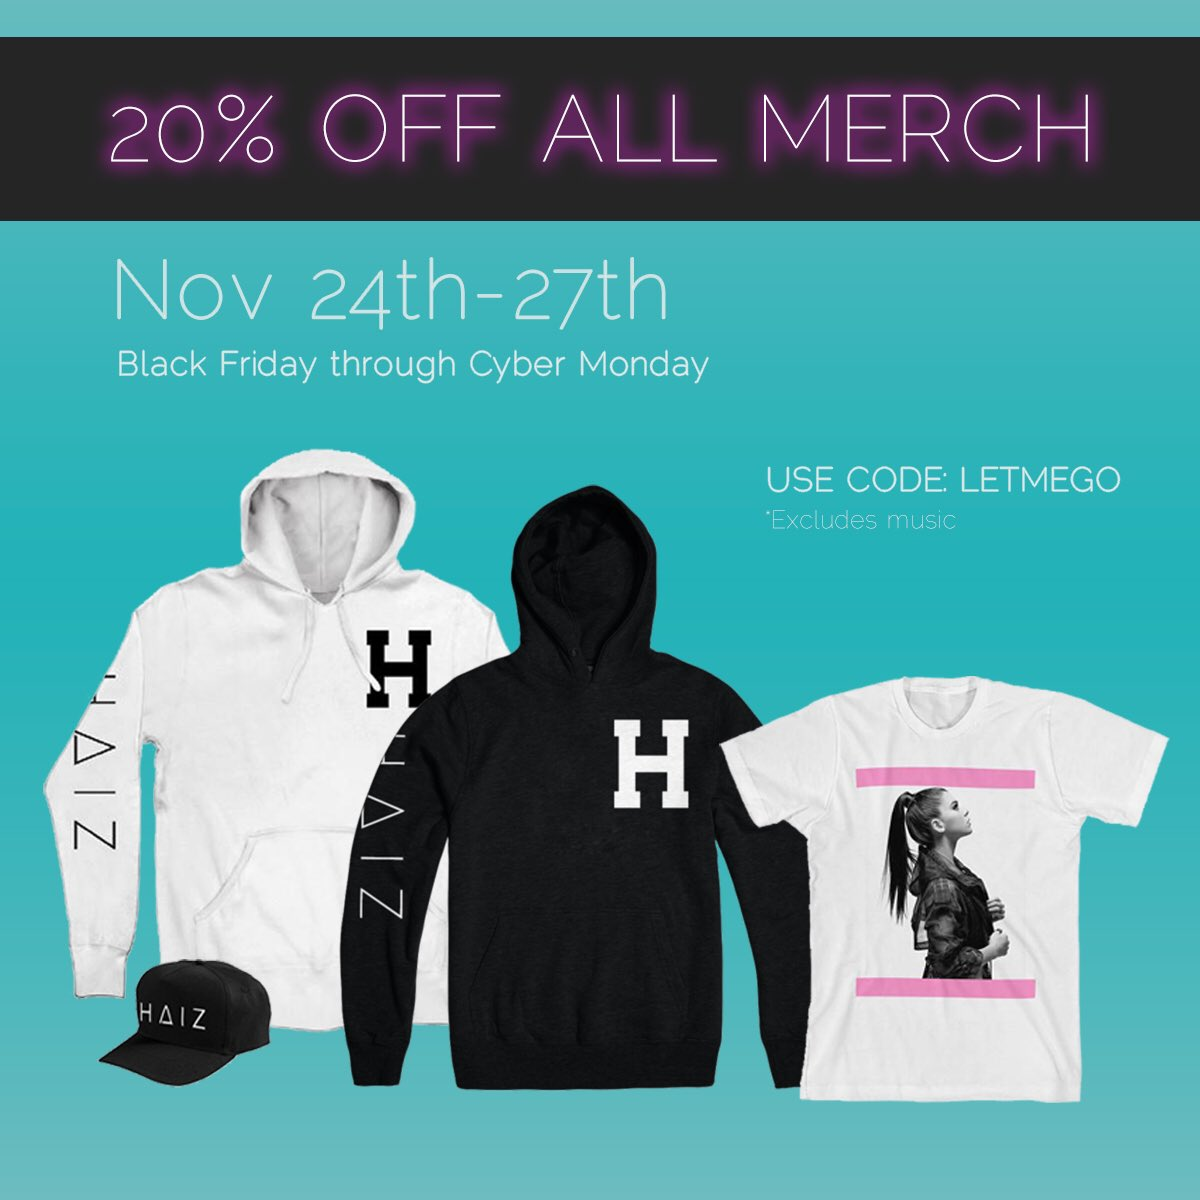 20% OFF ALL MERCH STARTING TODAY THROUGH MONDAY!  ����✨  https://t.co/JMOZR6Qk6C https://t.co/ffLSLojDH0